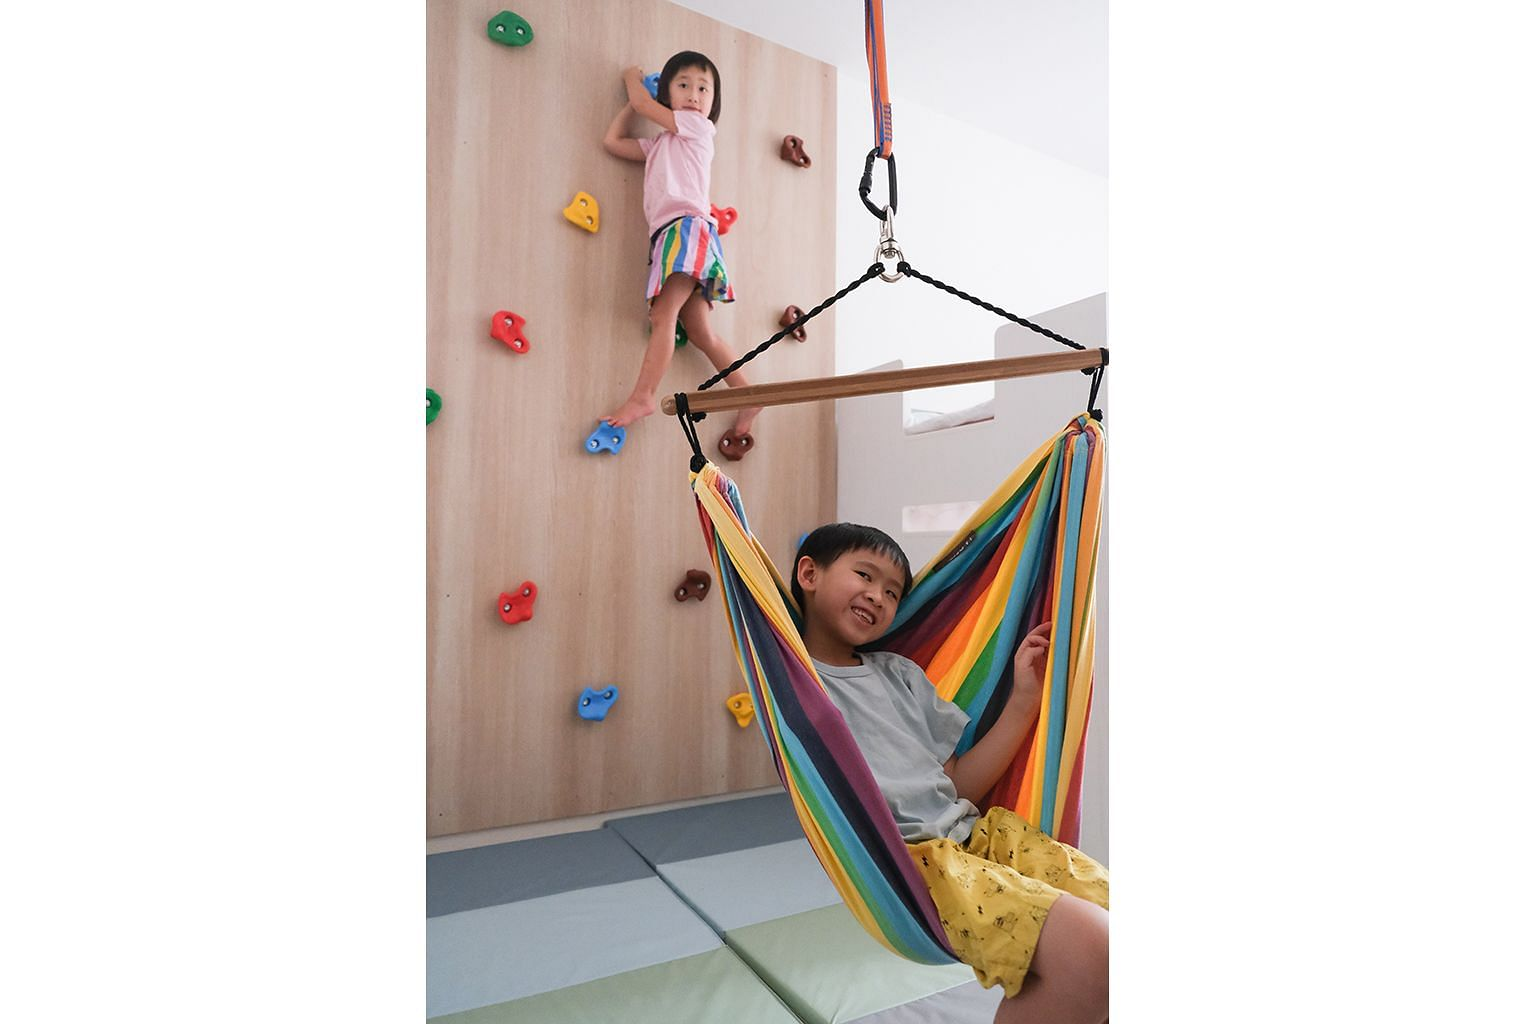 Ms Fynn Sor fitted a rock wall, a trapeze bar and a hammock swing in the room of her children, Riley and Zachary.